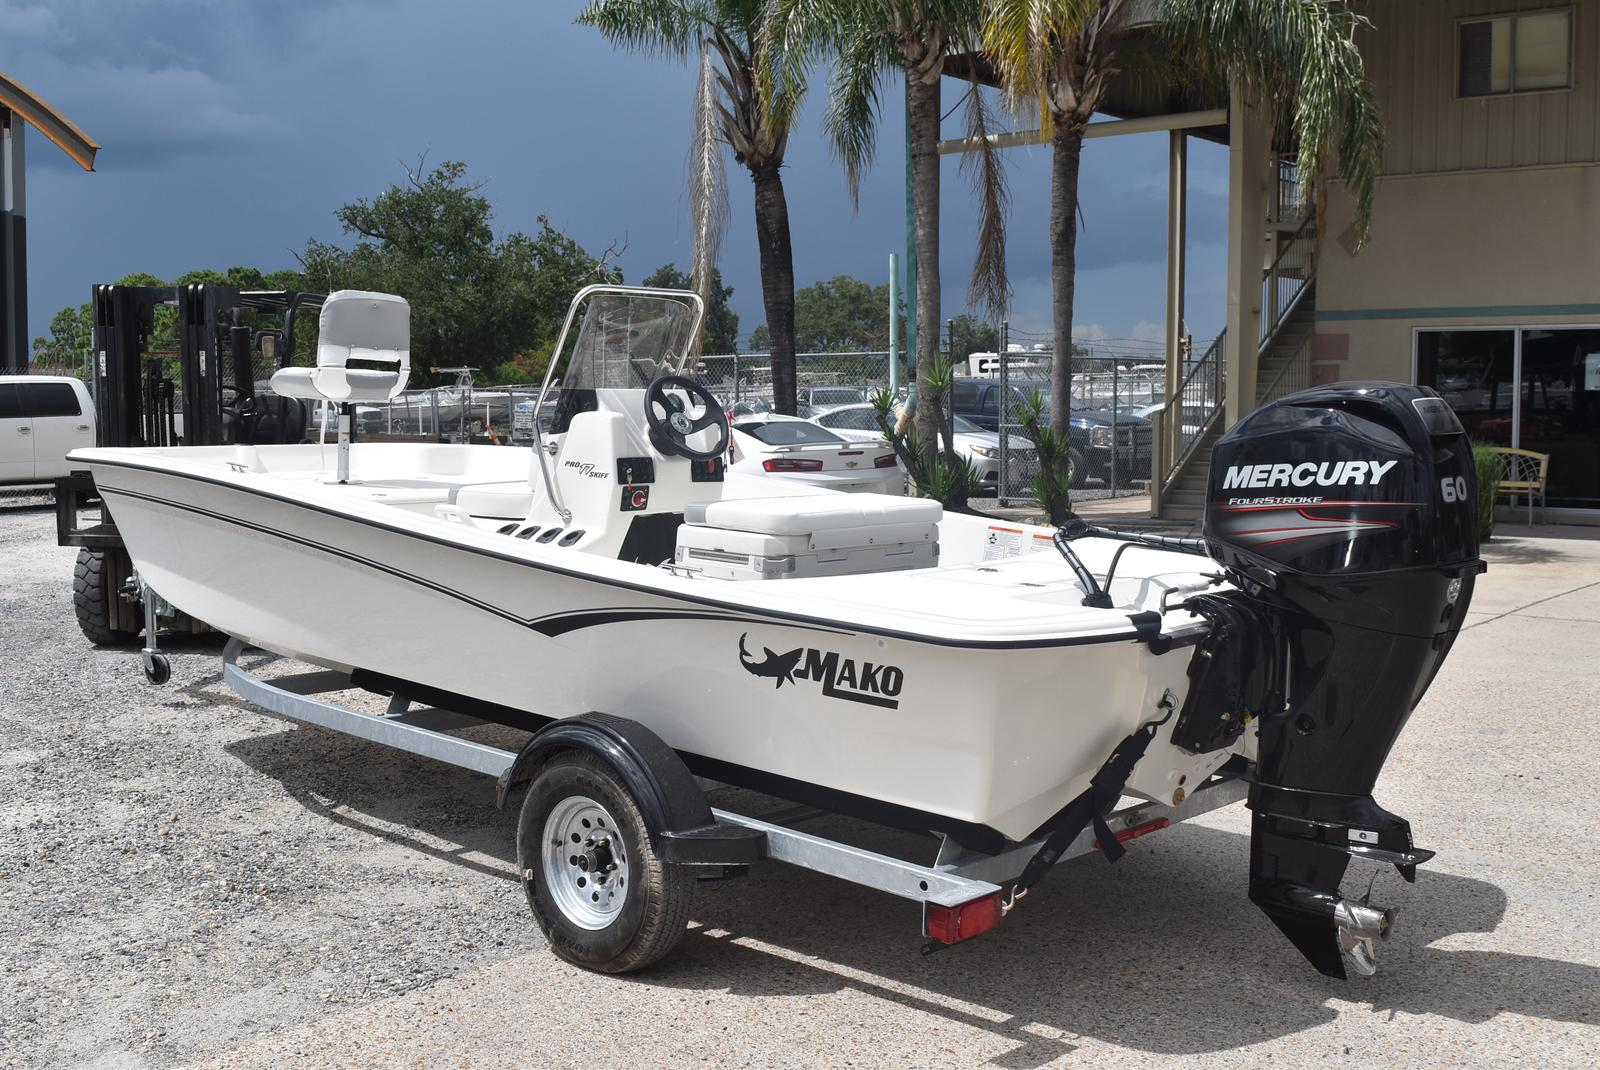 2020 Mako boat for sale, model of the boat is Pro Skiff 17, 75 ELPT & Image # 183 of 702